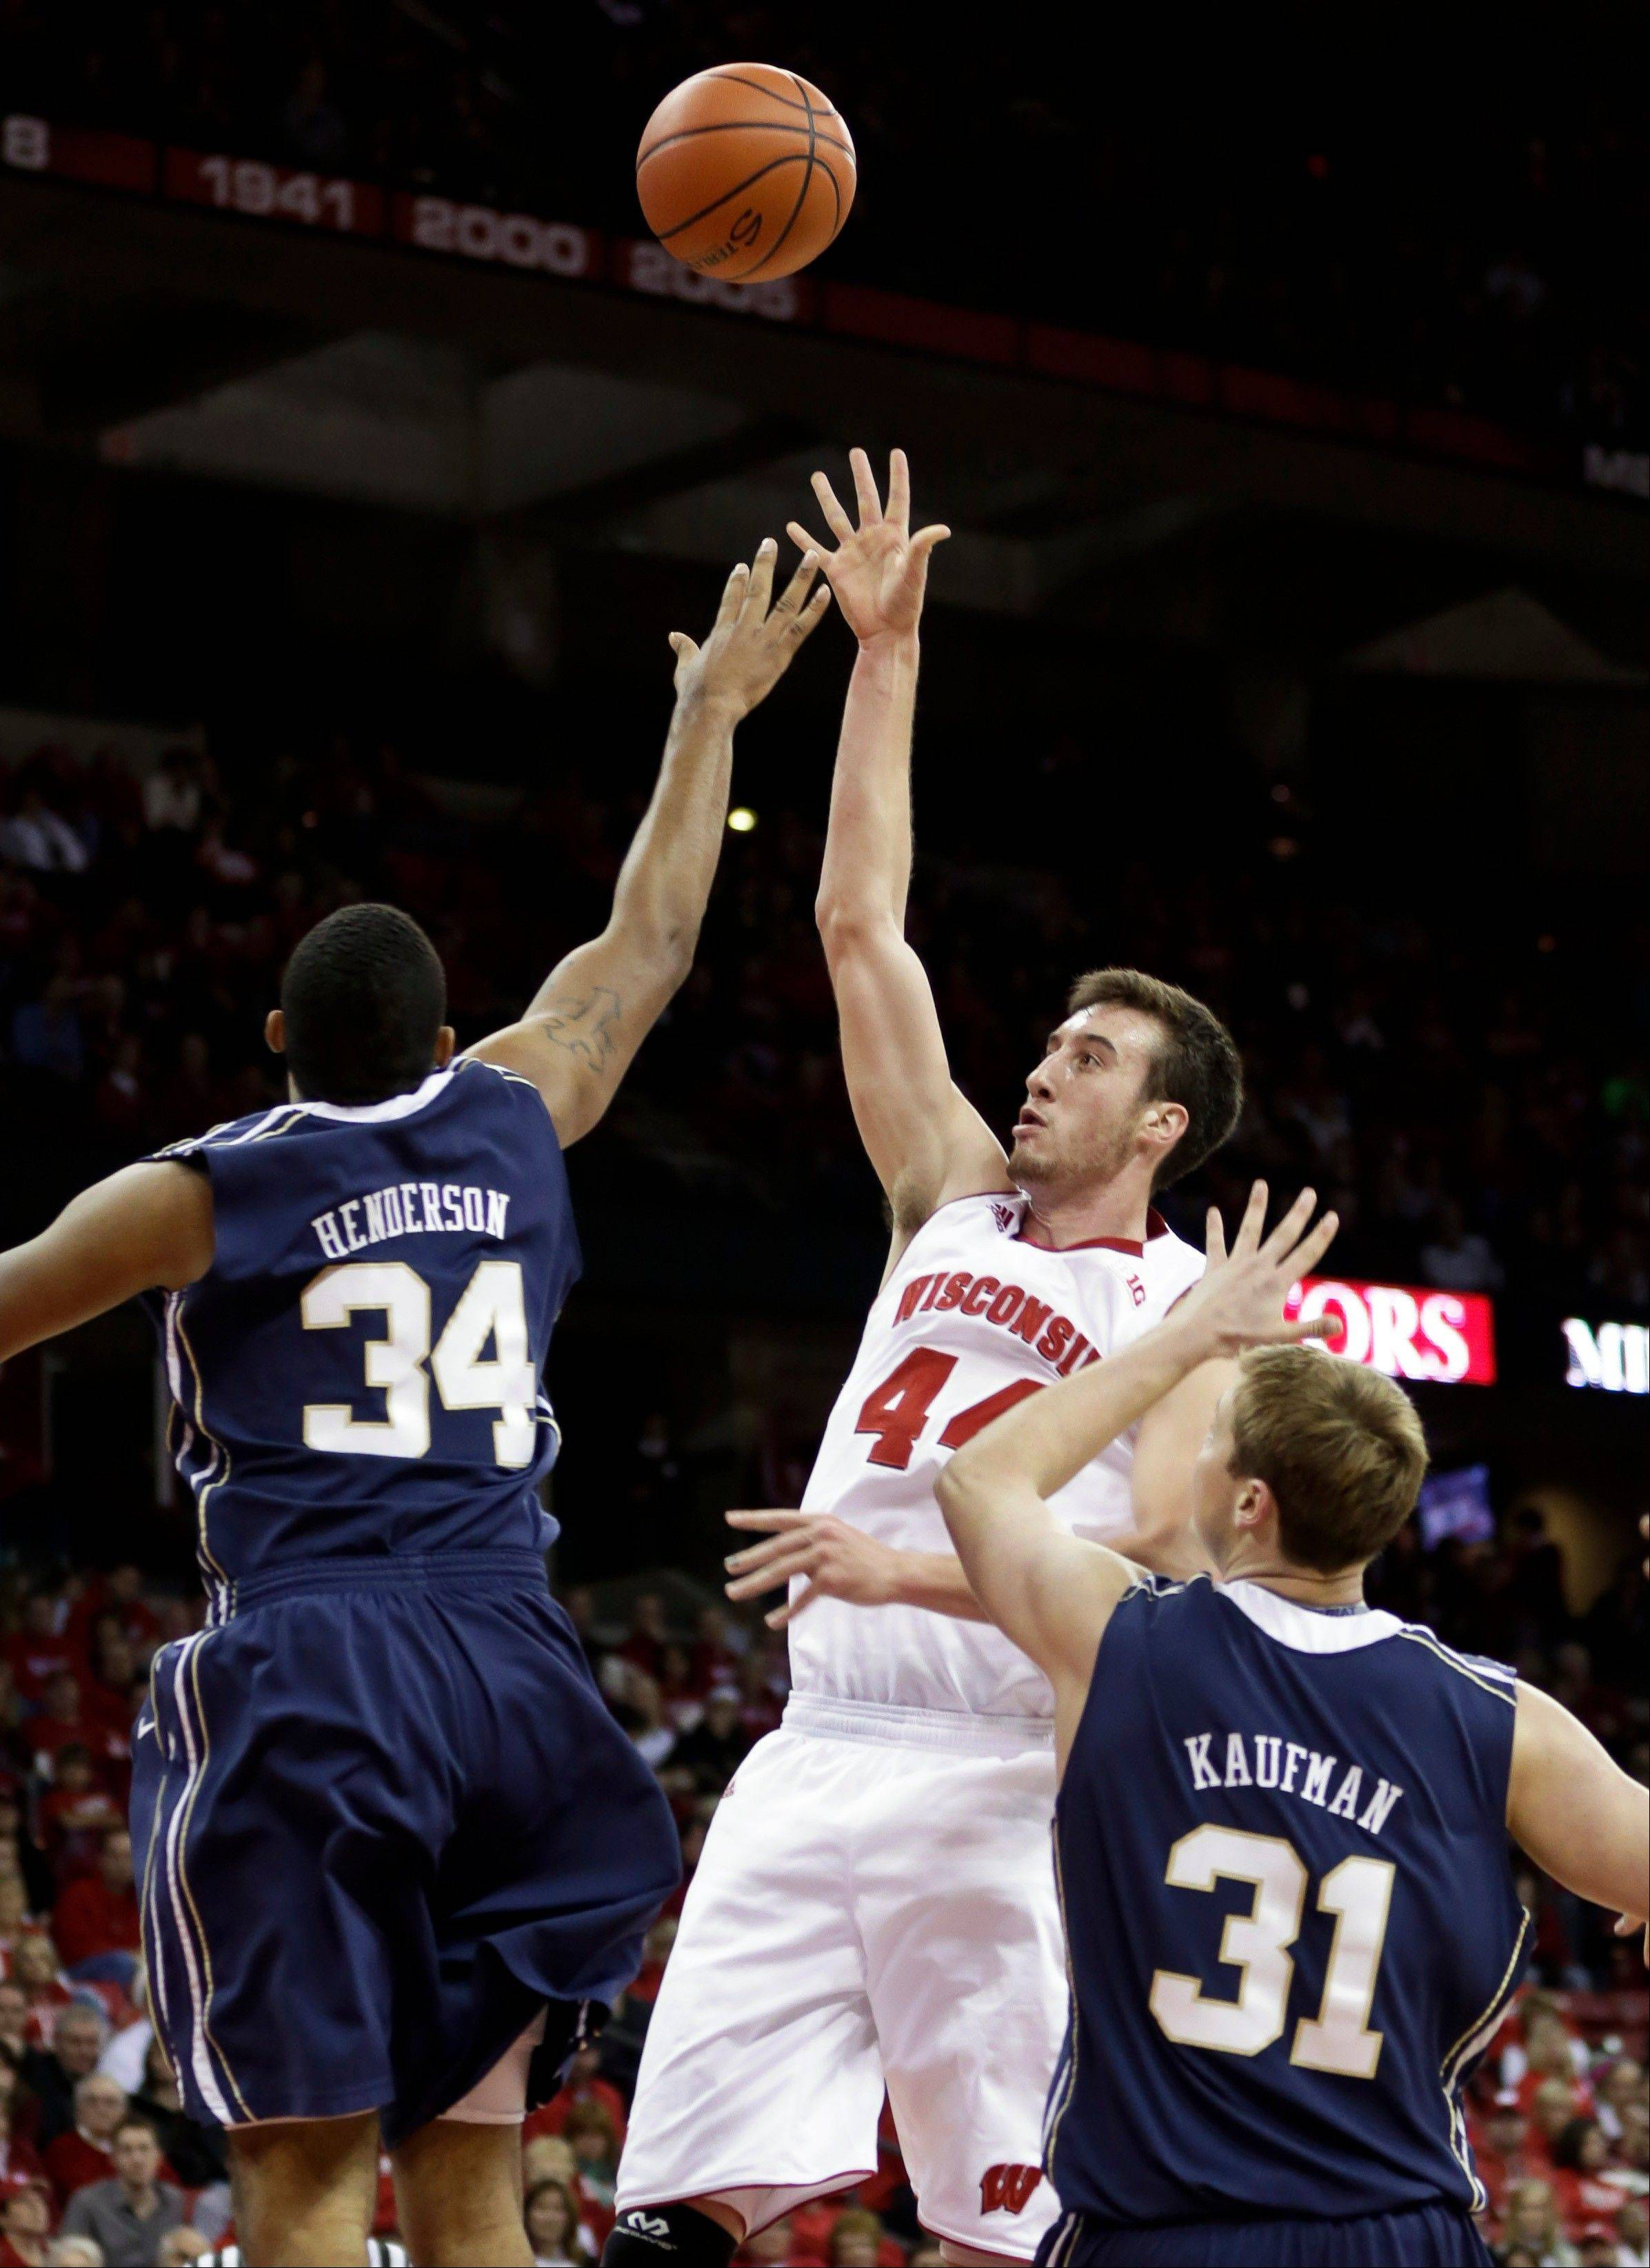 Wisconsin�s Frank Kaminsky shoots past Oral Roberts� Dennell Henderson (34) and Jorden Kaufman during the second half of Saturday�s game in Madison.